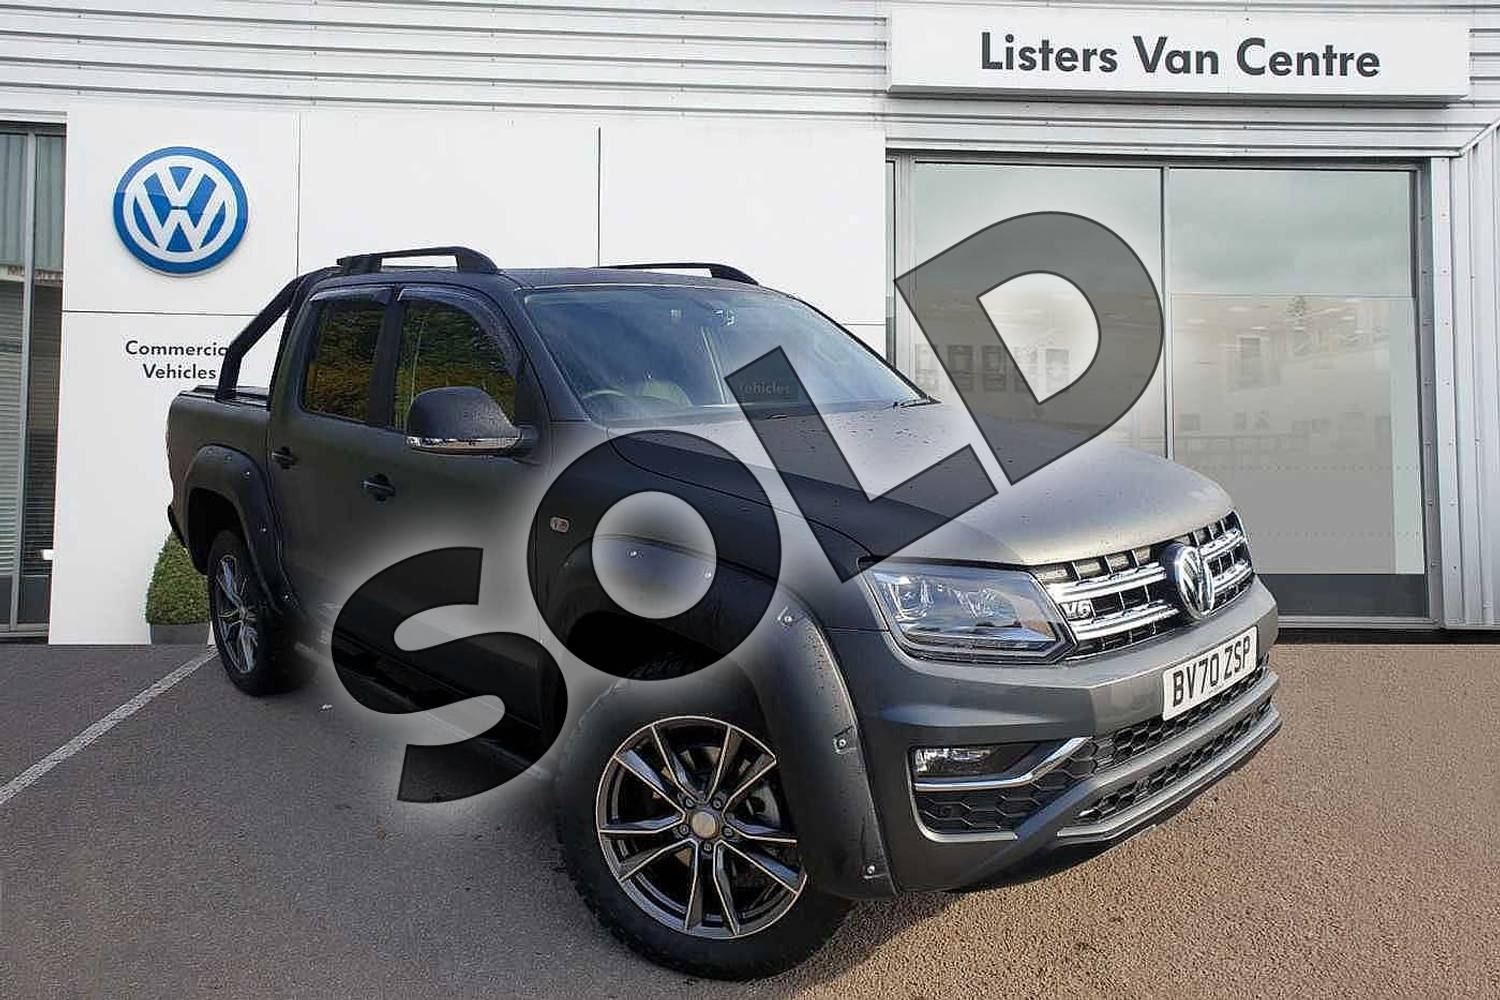 2020 Volkswagen Amarok A33 Diesel D/Cab Pick Up Highline 3.0 V6 TDI 258 BMT 4M Auto in Grey at Listers Volkswagen Van Centre Coventry